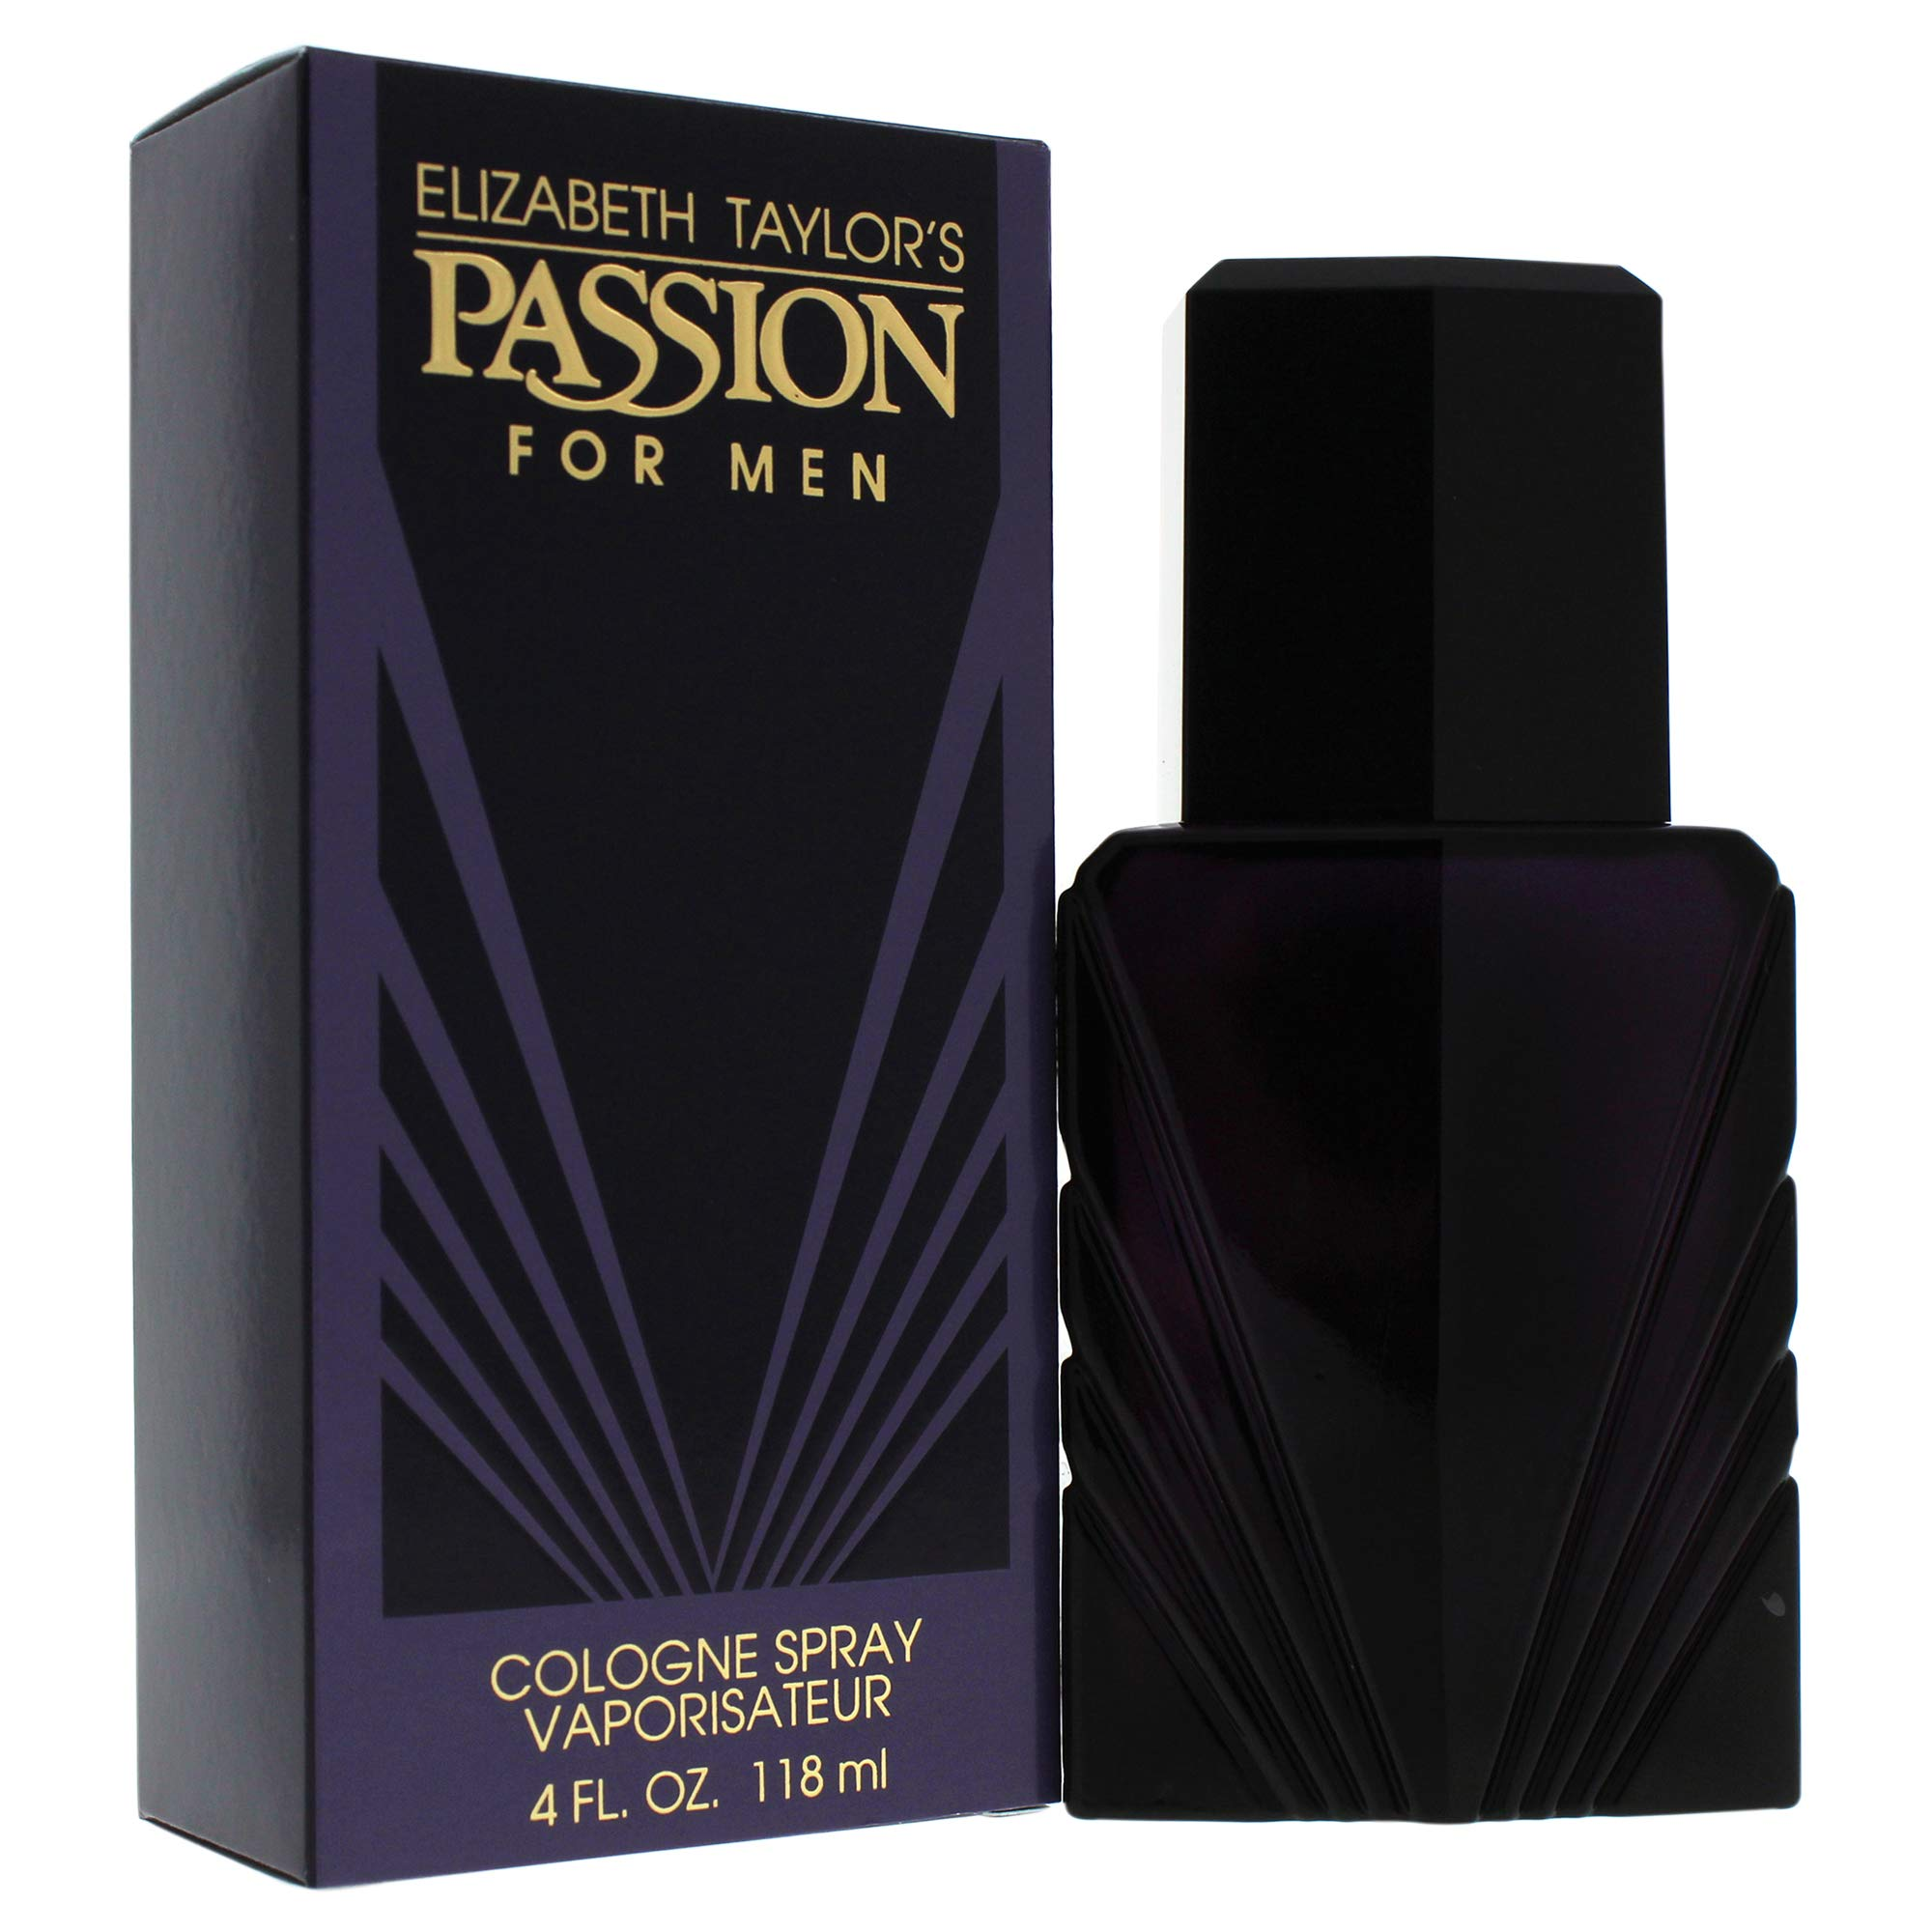 Passion by Elizabeth Taylor for Men, Cologne Spray, 4-Ounce by Elizabeth Taylor